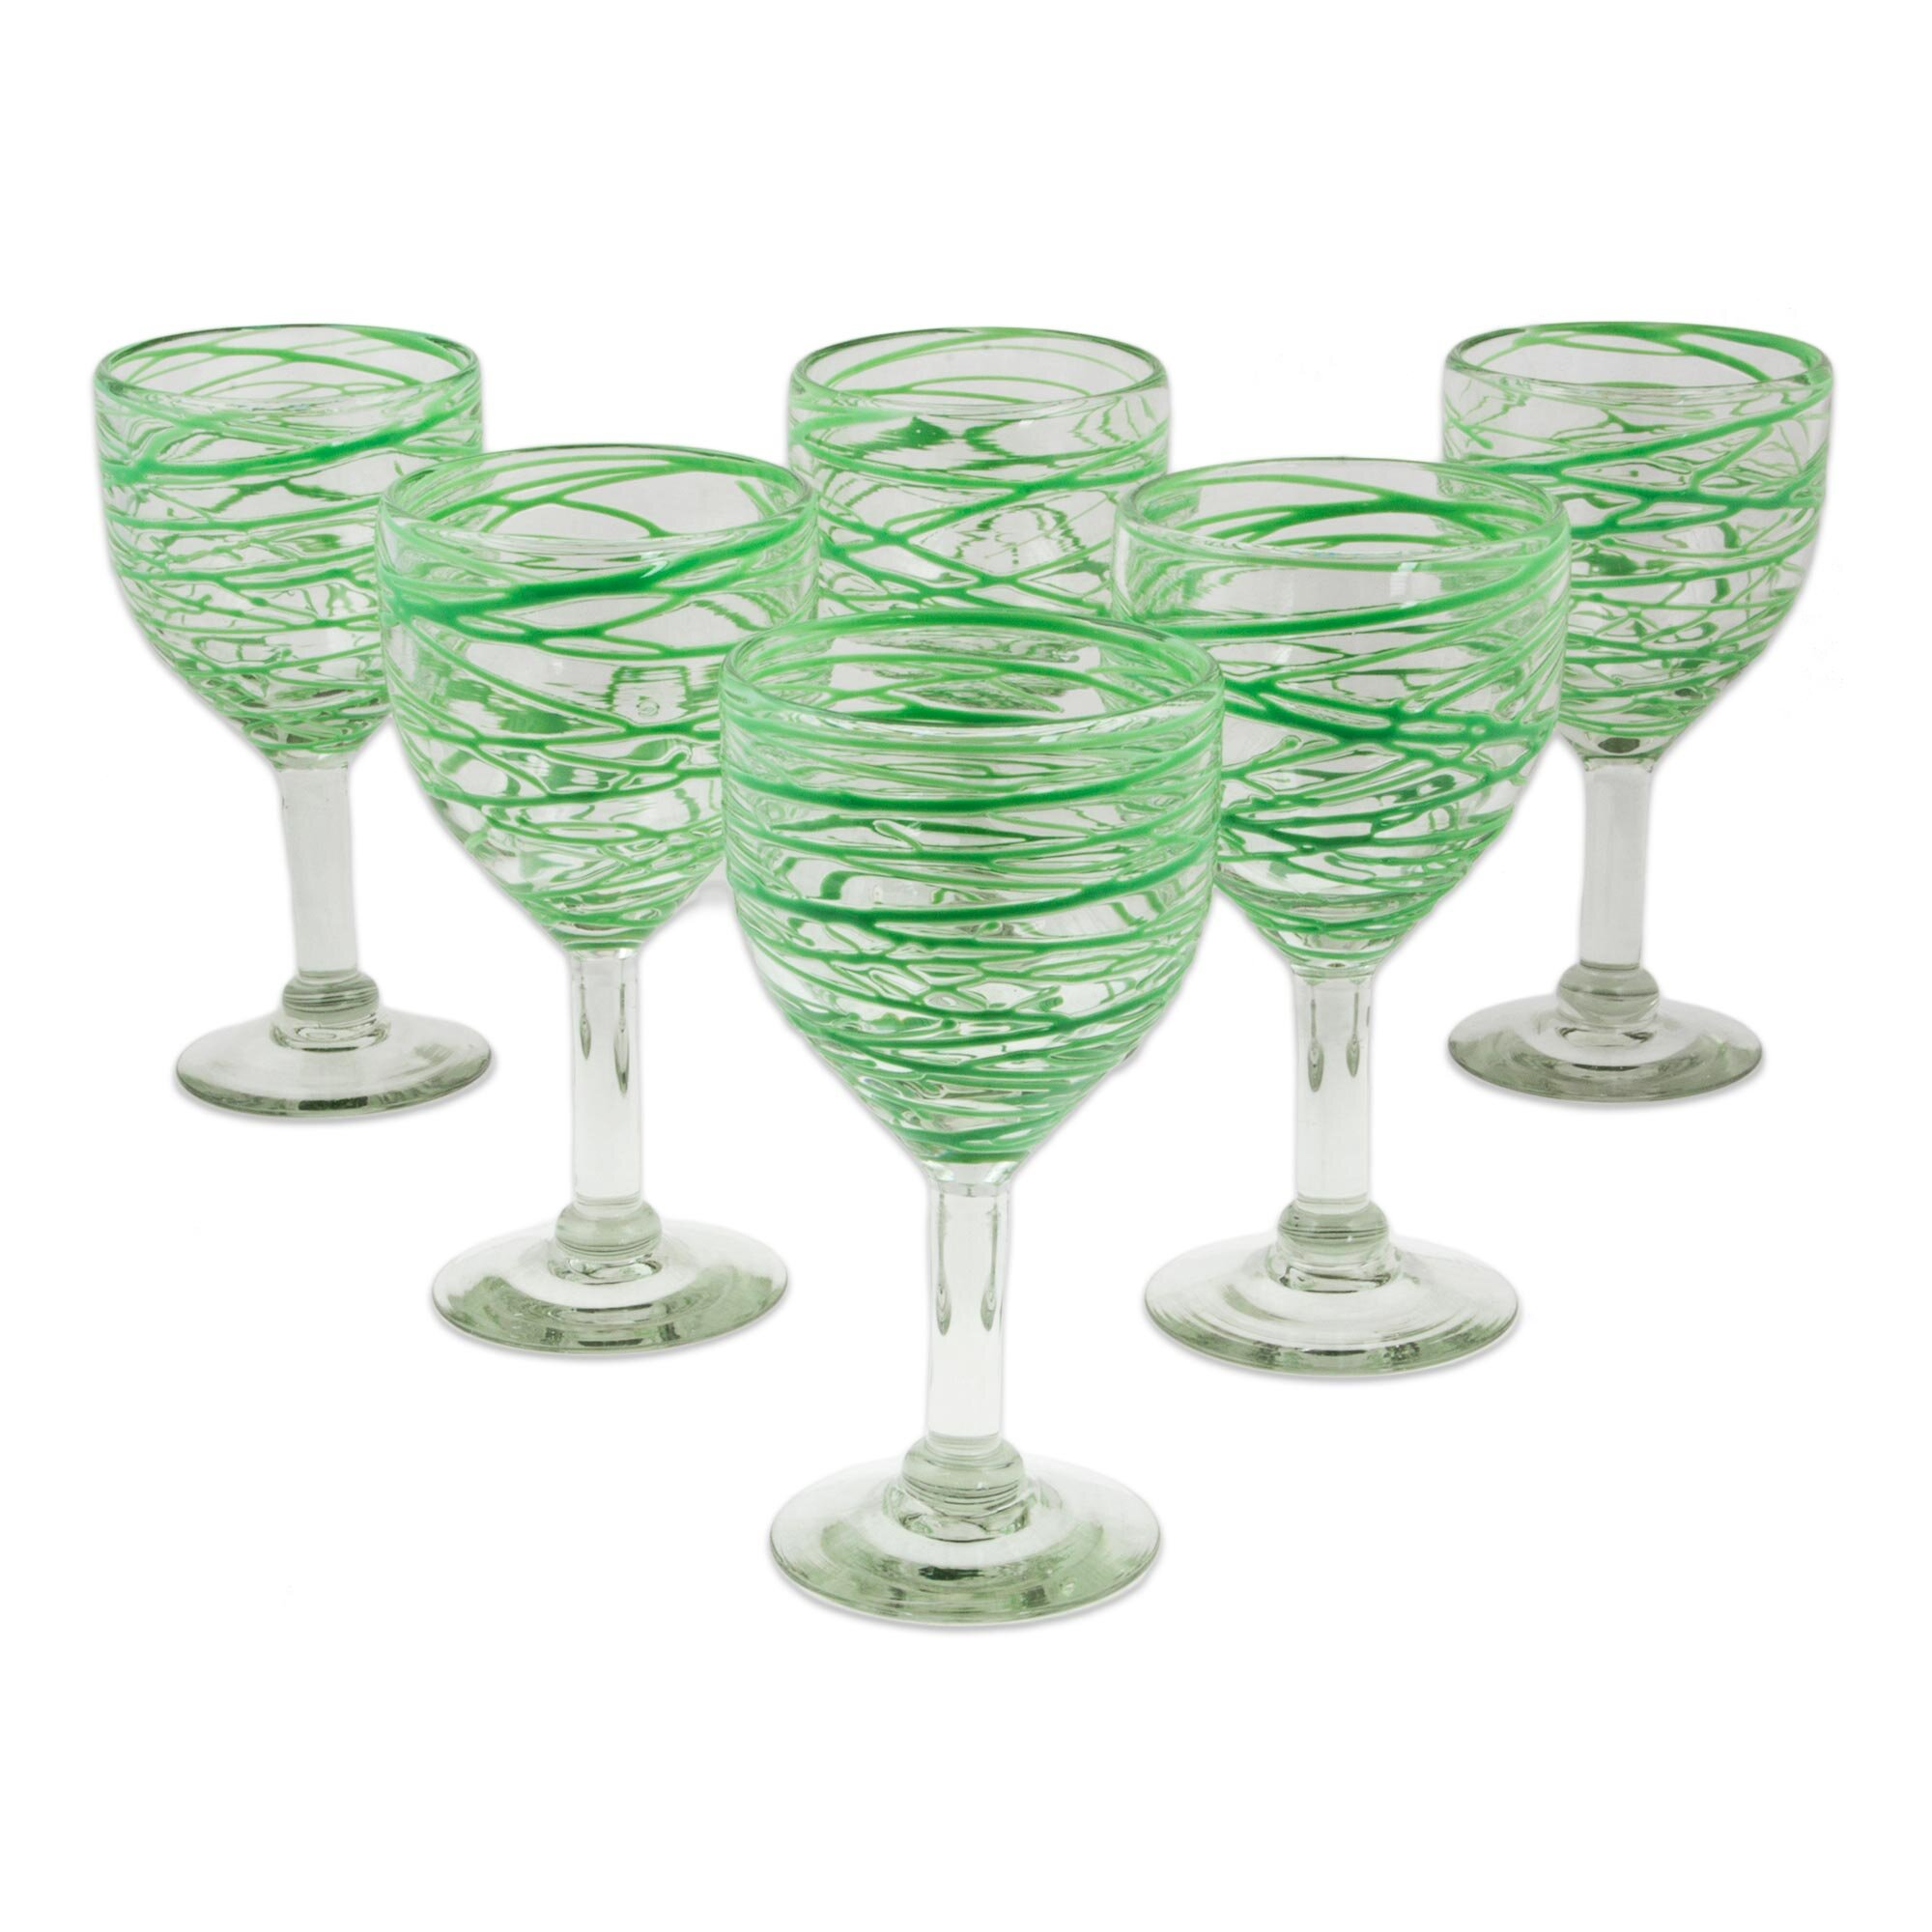 Mexico Wine Glasses Up To 65 Off Until 11 20 Wayfair Wayfair Ca